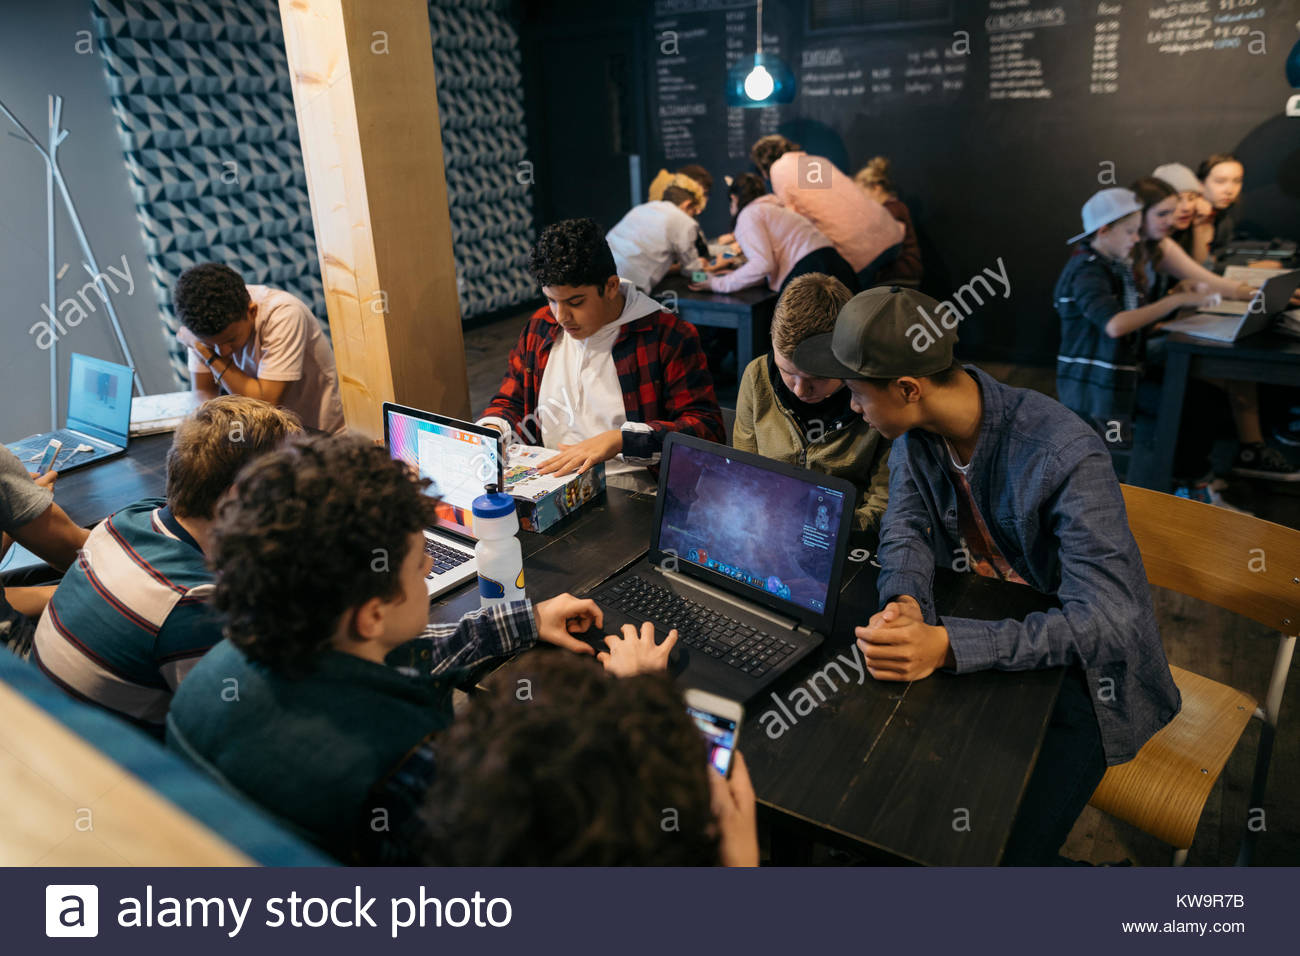 High school students studying at laptops in cafe - Stock Image